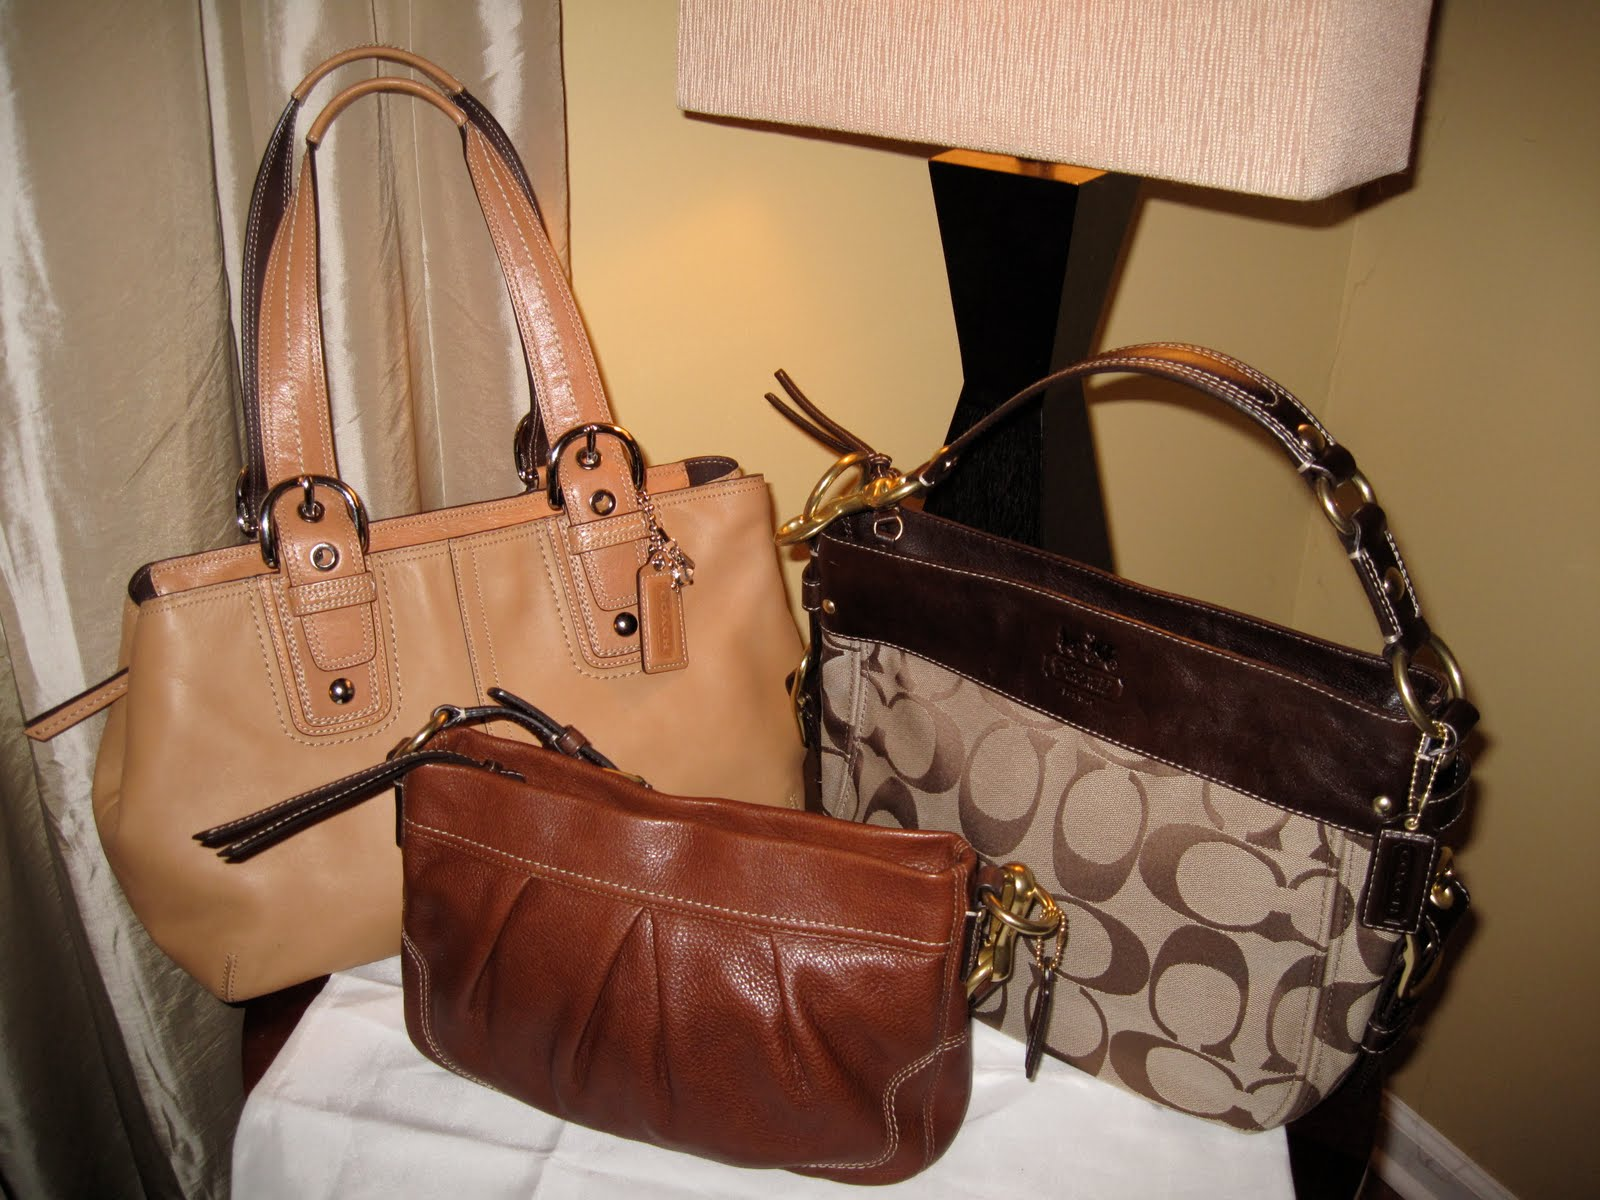 efd29735d08d My Coach leather purse collection  Leather Coach purses and on the right